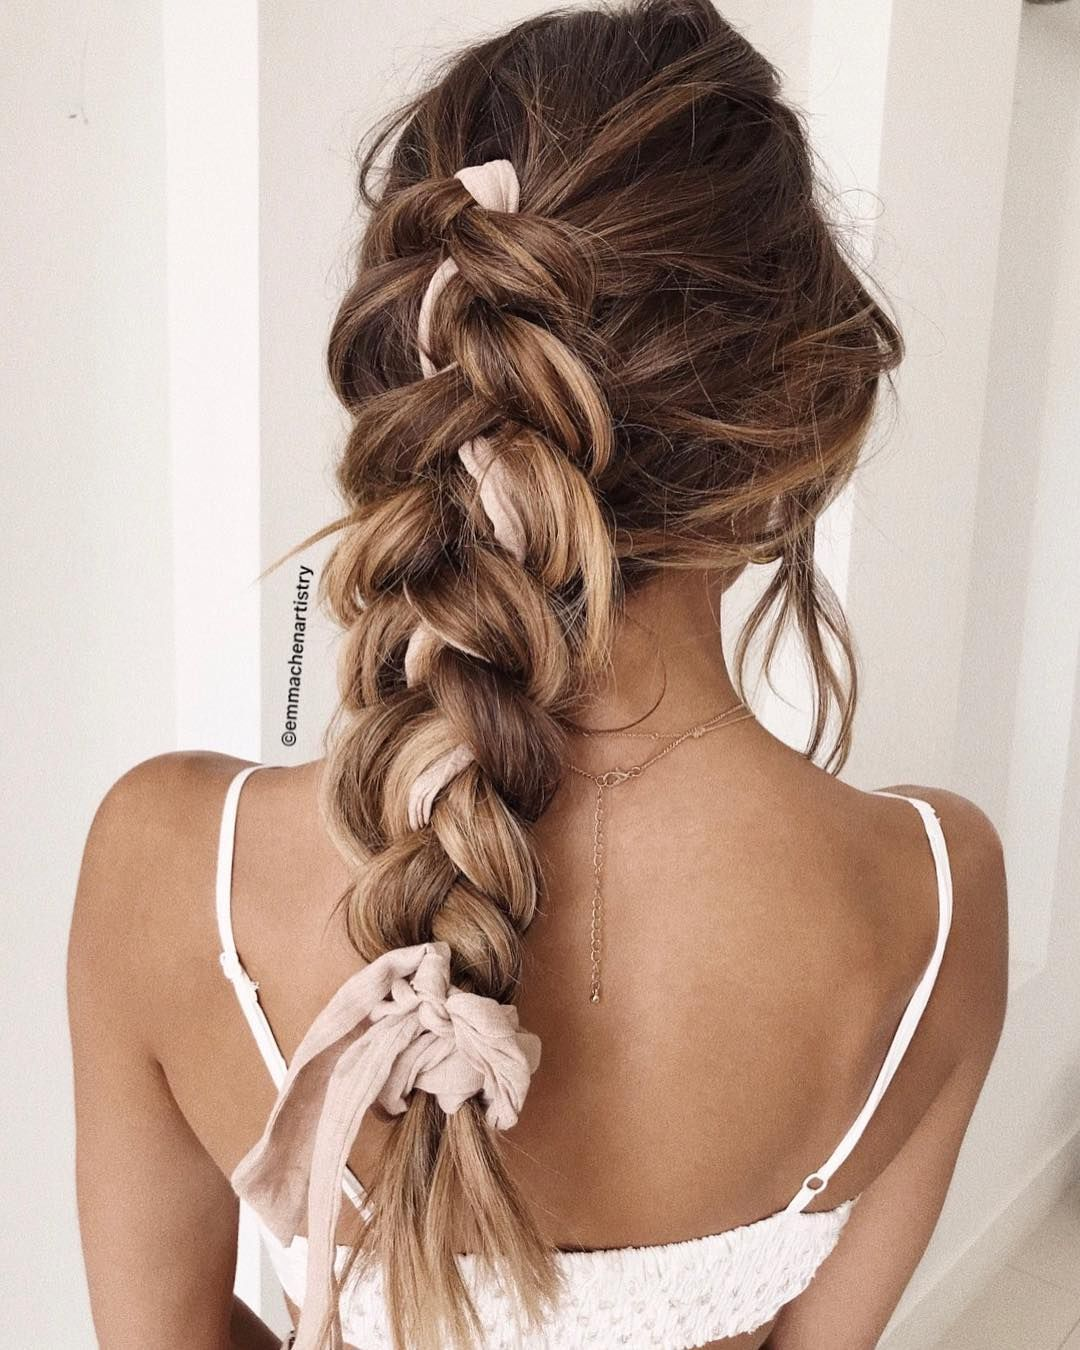 simple braid hairstyle , updo hairstyle inspiration